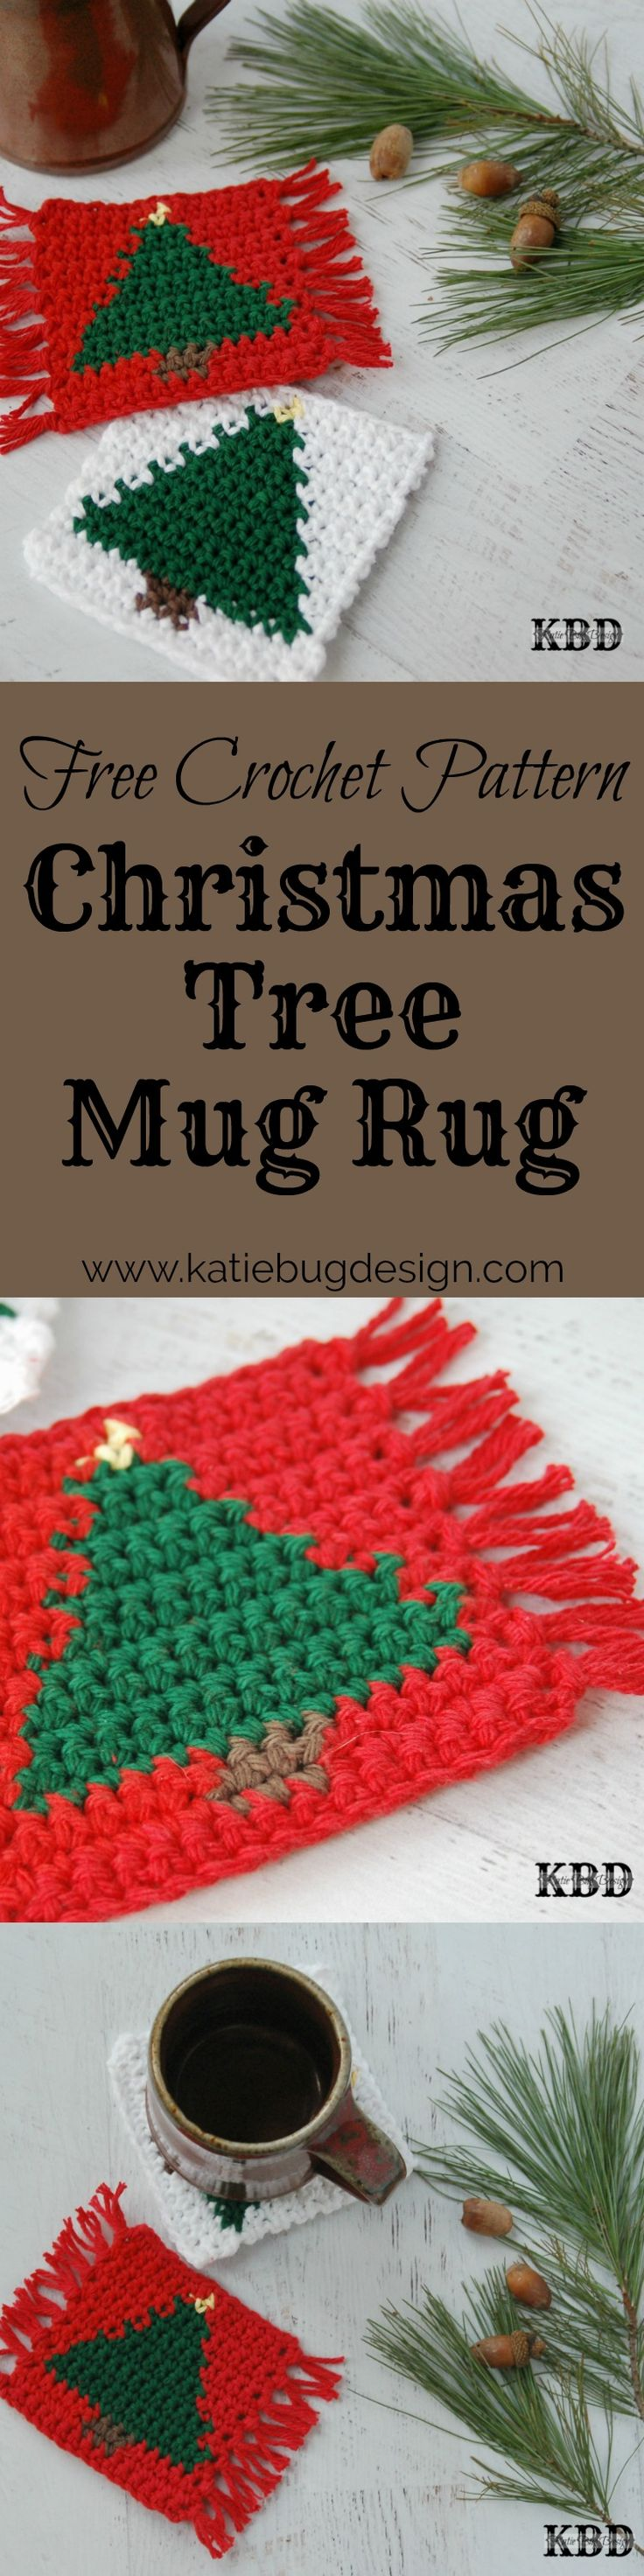 Need a quick and easy holiday gift idea? Check out this free Christmas Tree Mug Rug pattern via Katie Bug Design